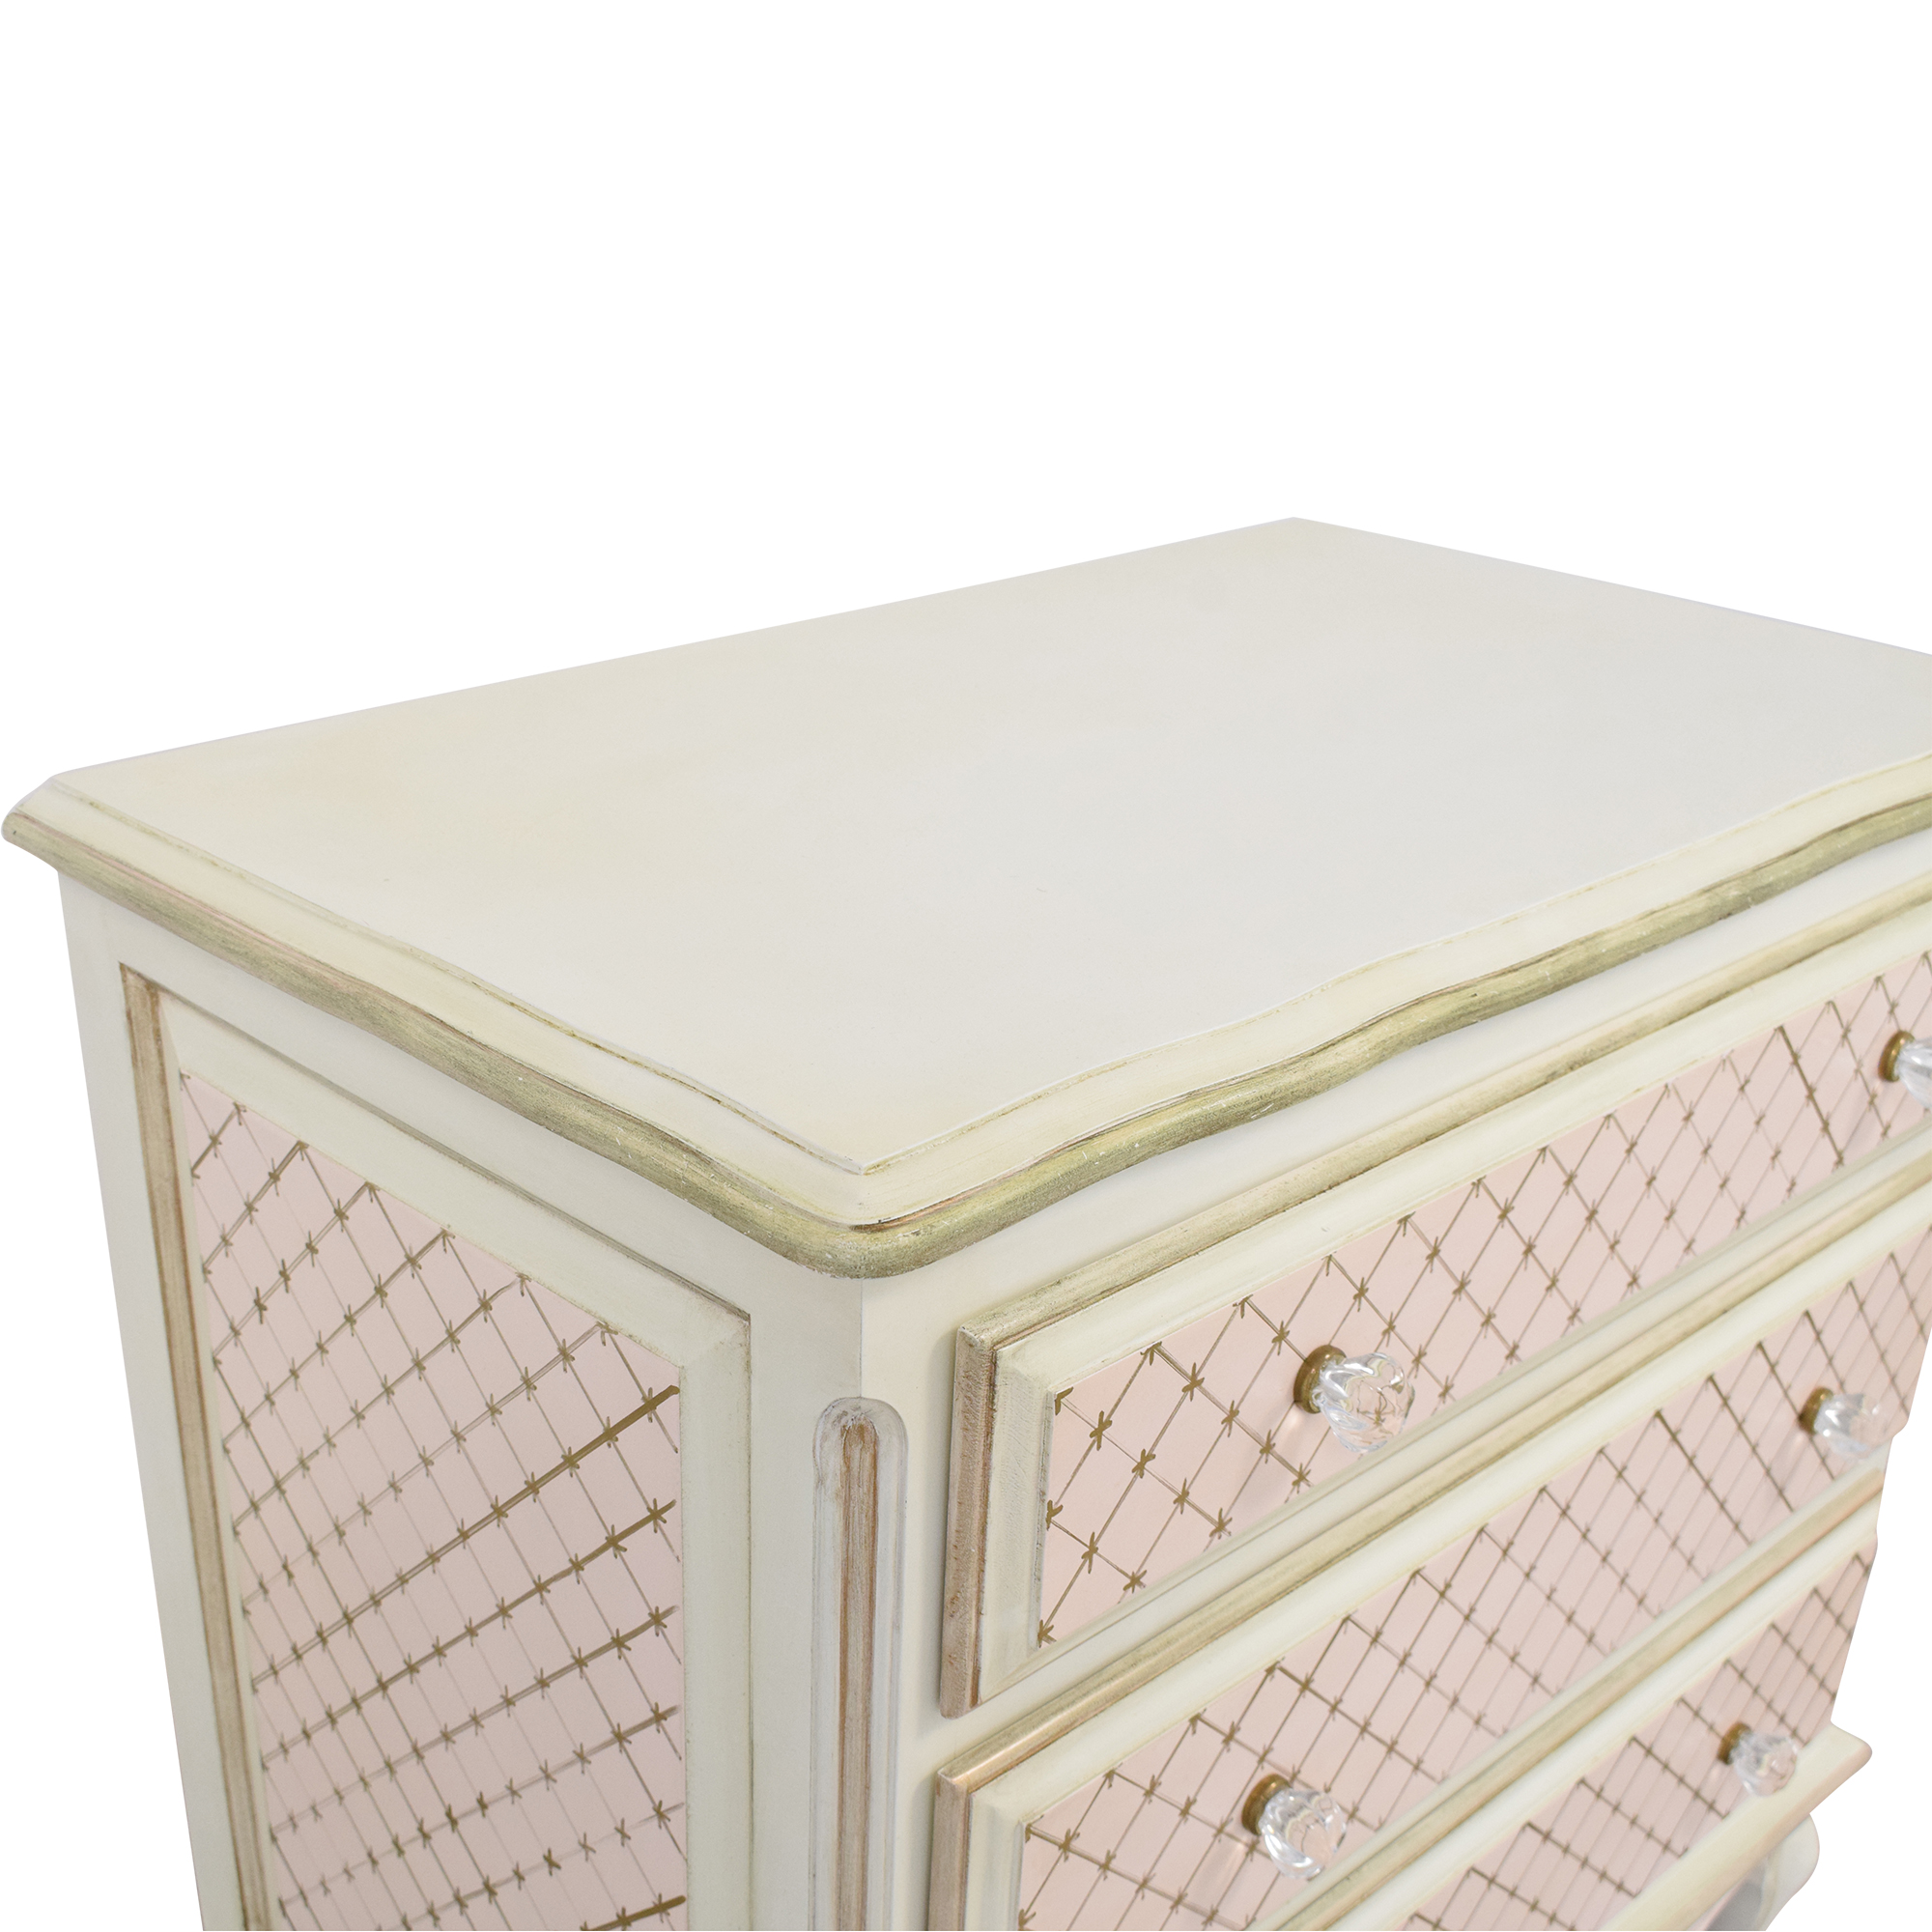 Bograd Kids Bograd Kids French Chest with Three Drawers price